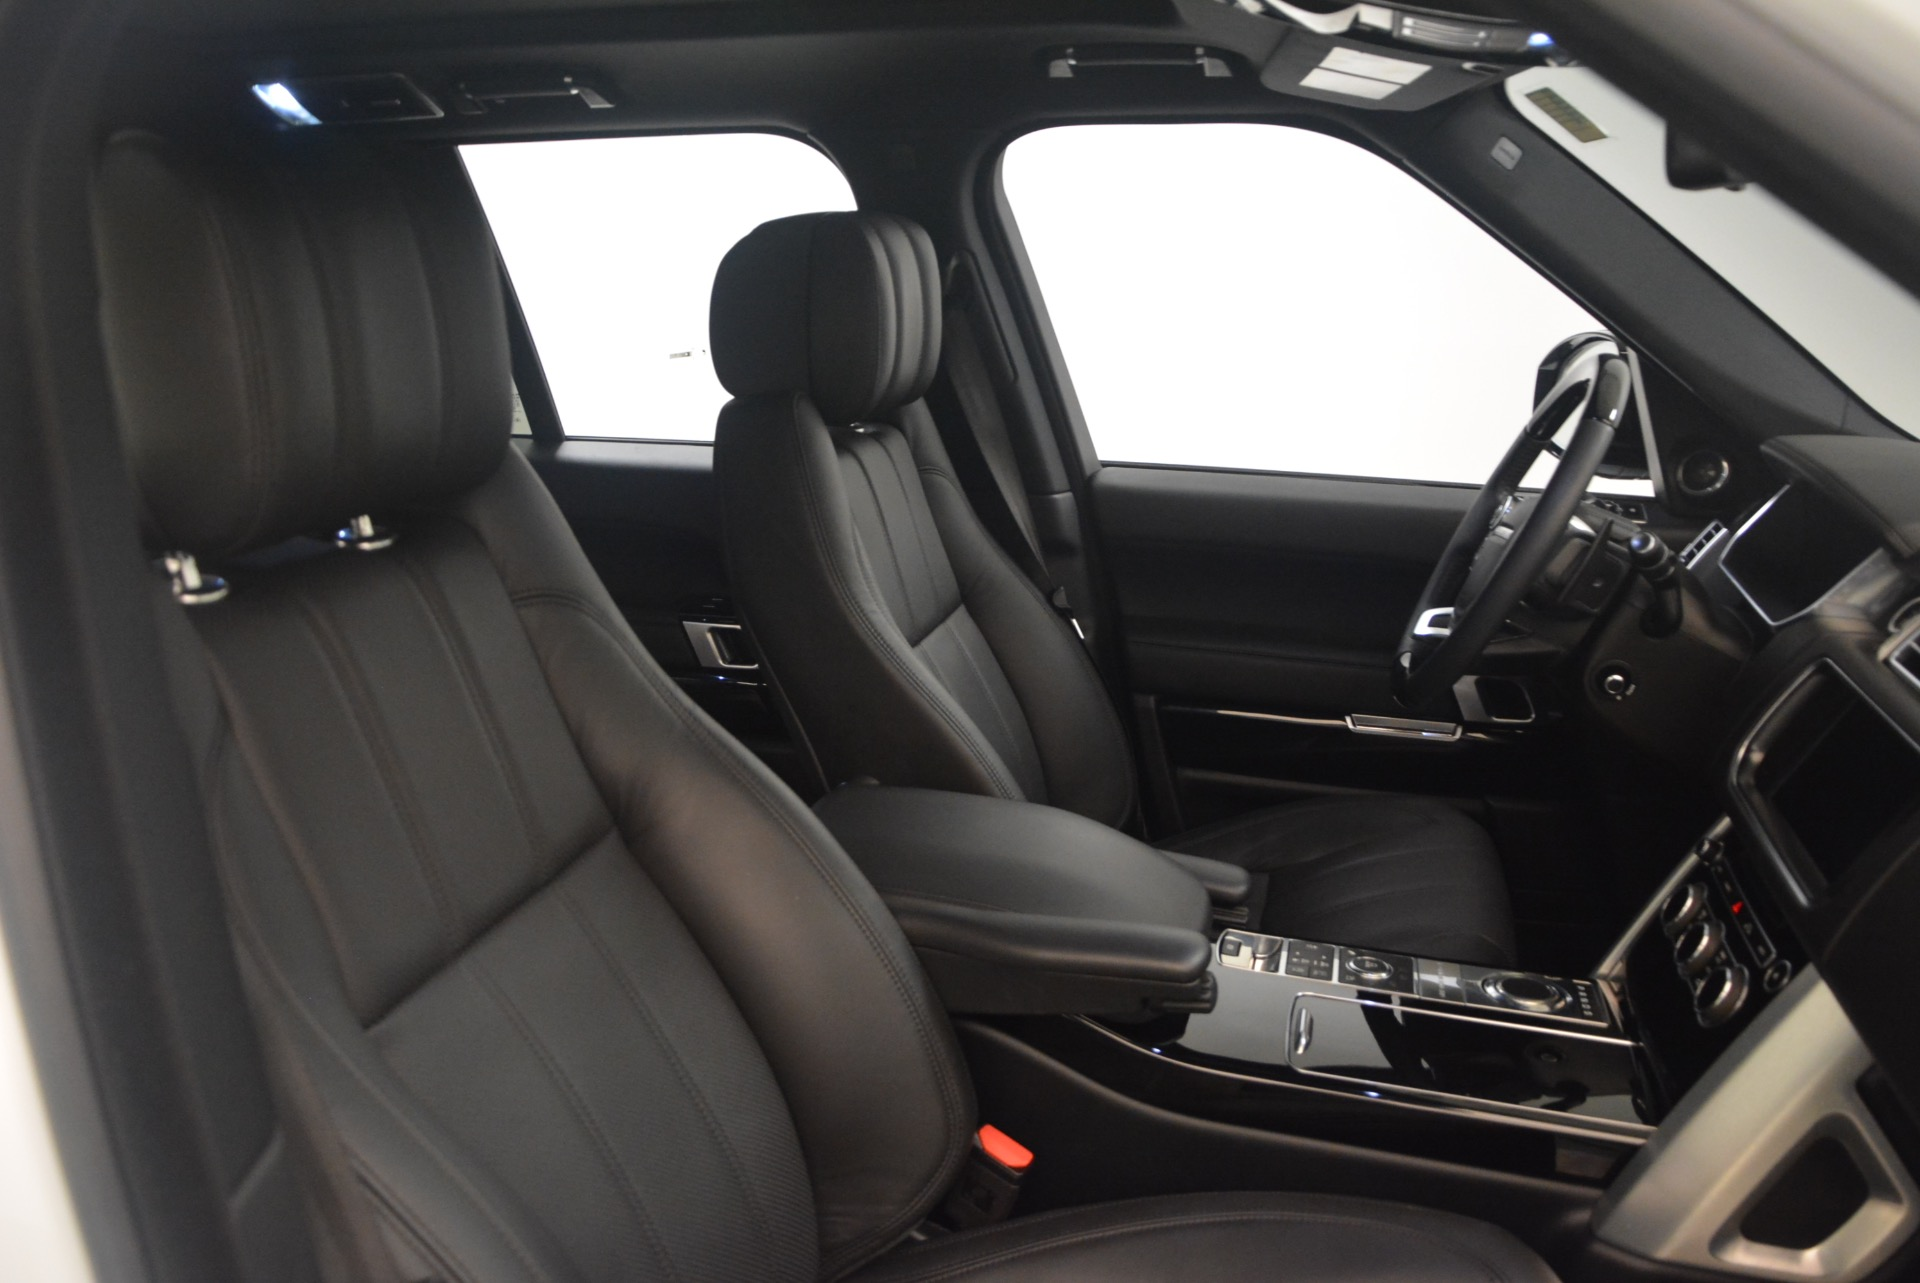 Used 2015 Land Rover Range Rover Supercharged For Sale In Westport, CT 1292_p30